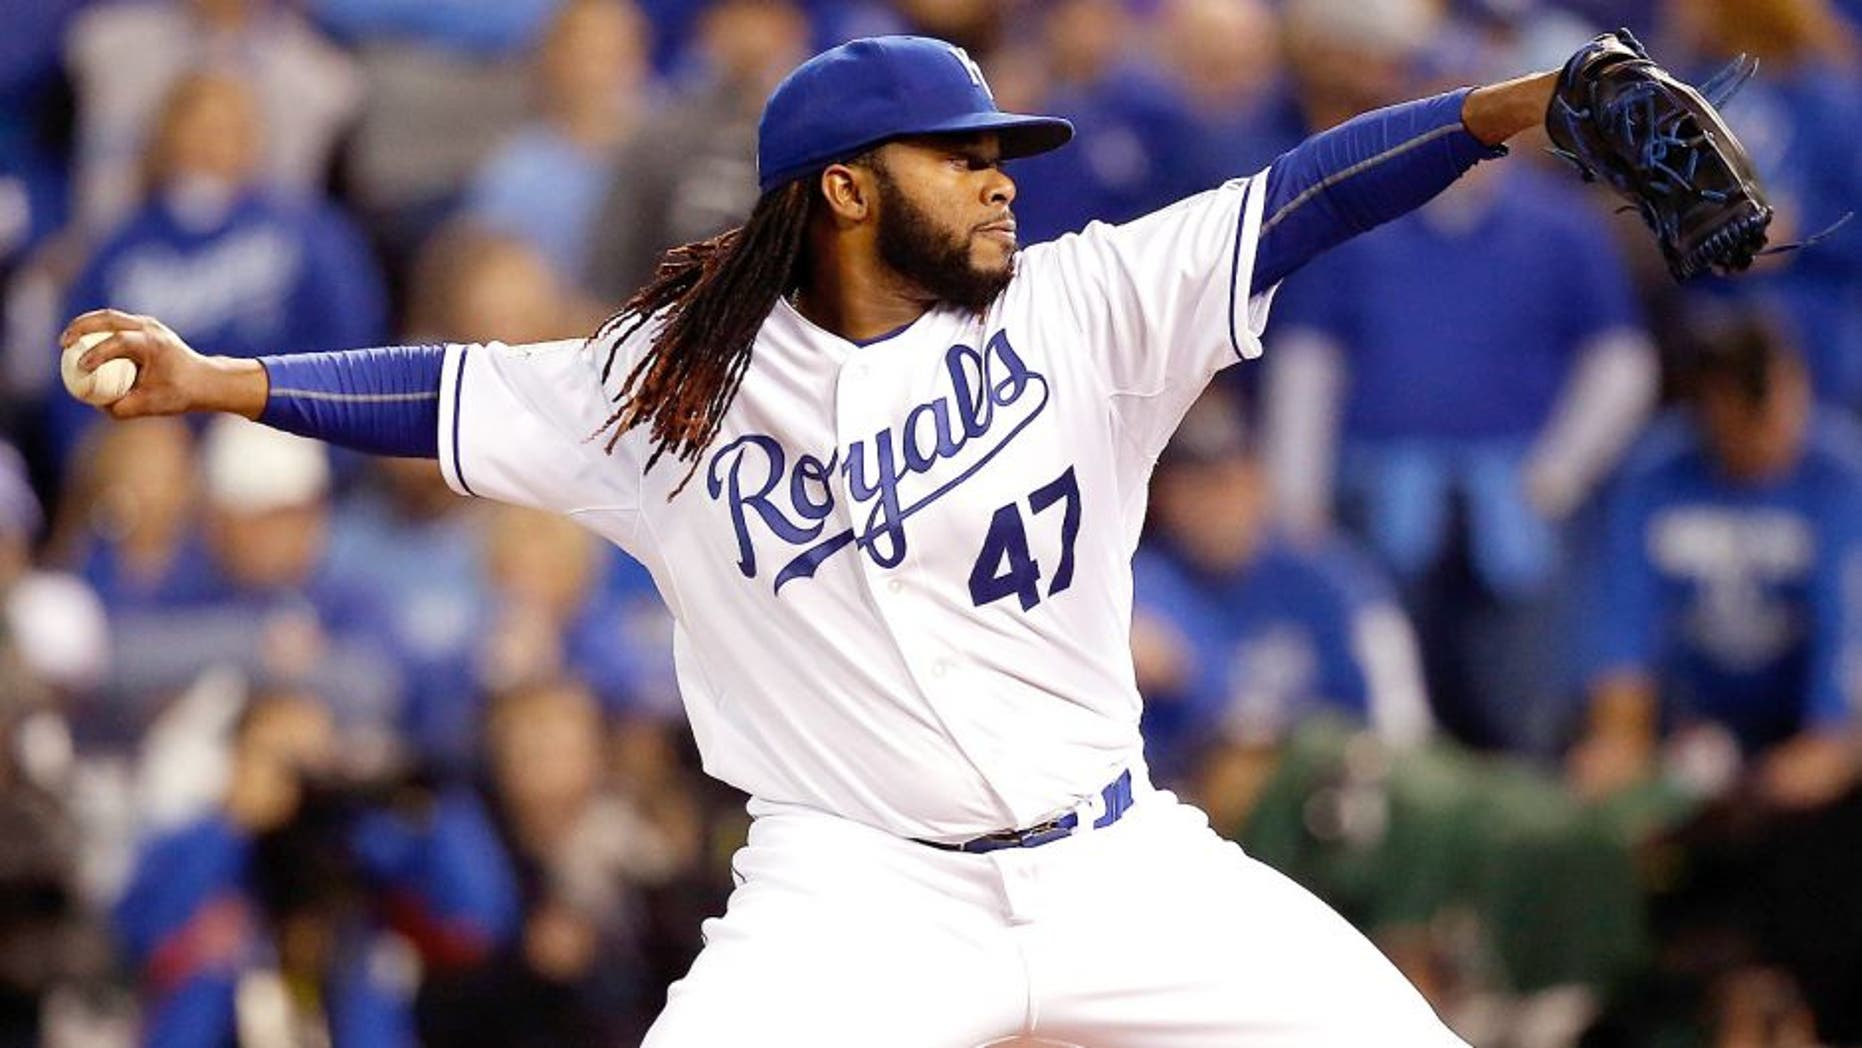 KANSAS CITY, MO - OCTOBER 28: Johnny Cueto #47 of the Kansas City Royals throws a pitch in the first inning against the New York Mets in Game Two of the 2015 World Series at Kauffman Stadium on October 28, 2015 in Kansas City, Missouri. (Photo by Christian Petersen/Getty Images)